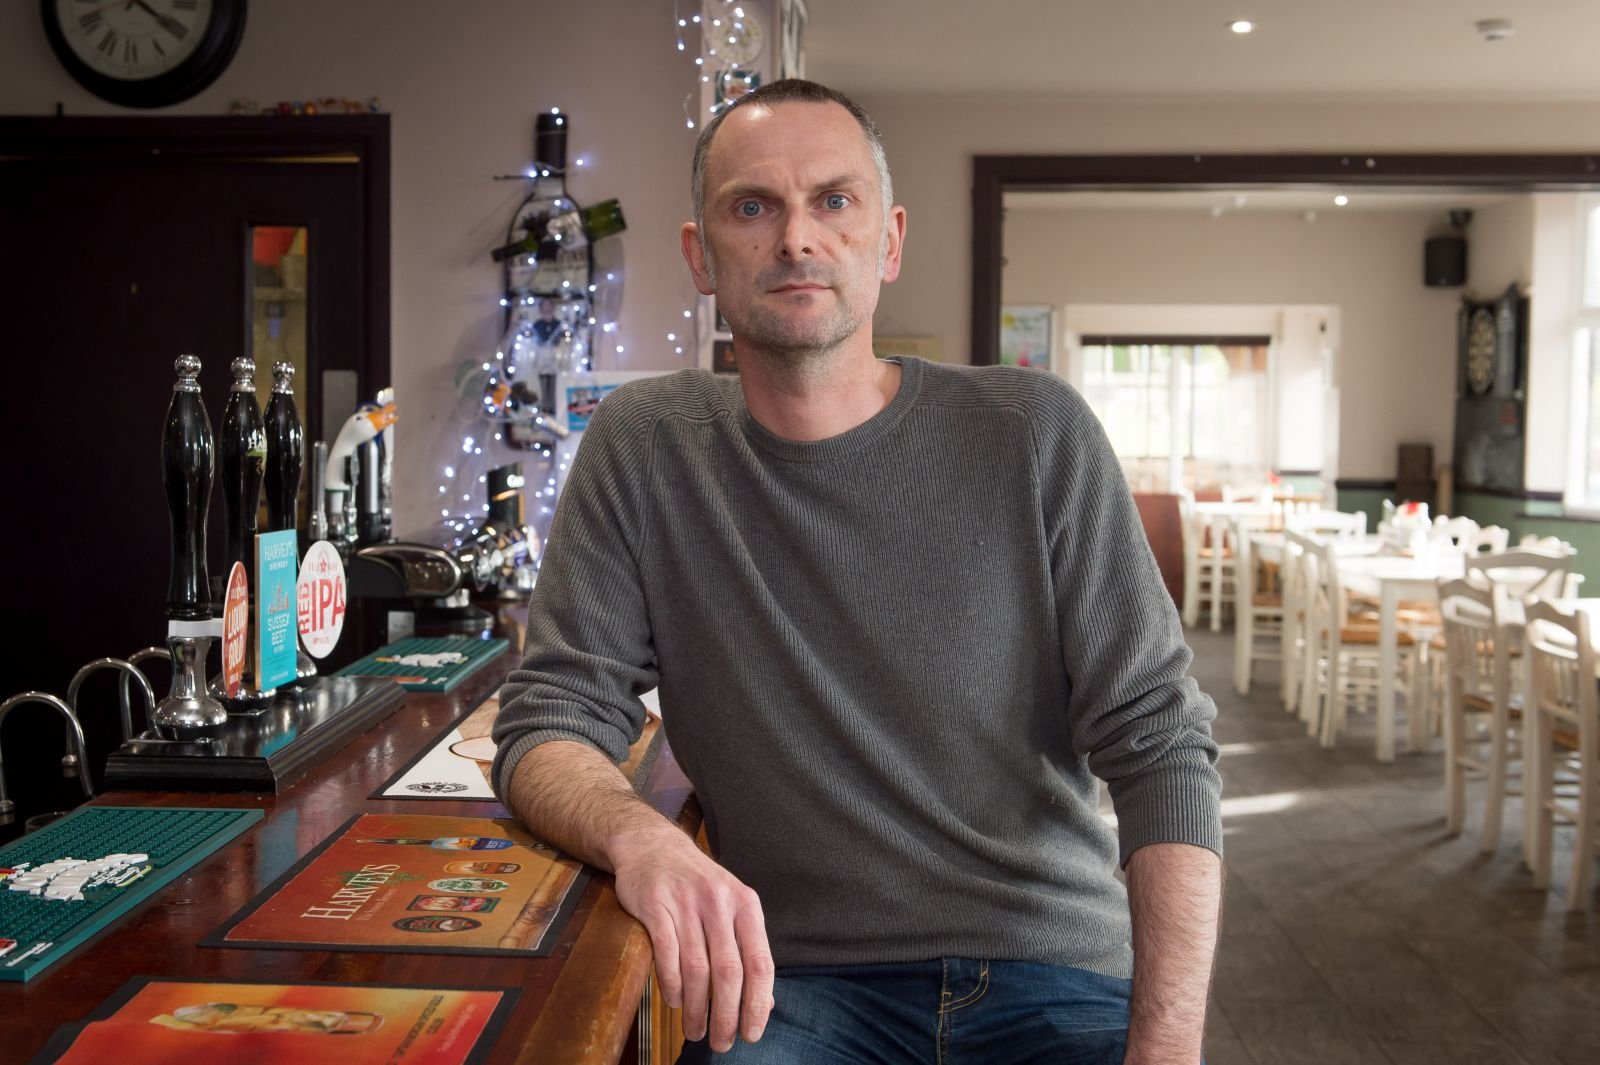 Iain Chambers who is is general manager of The Bevy, Moulsecoomb's award-winning community pub